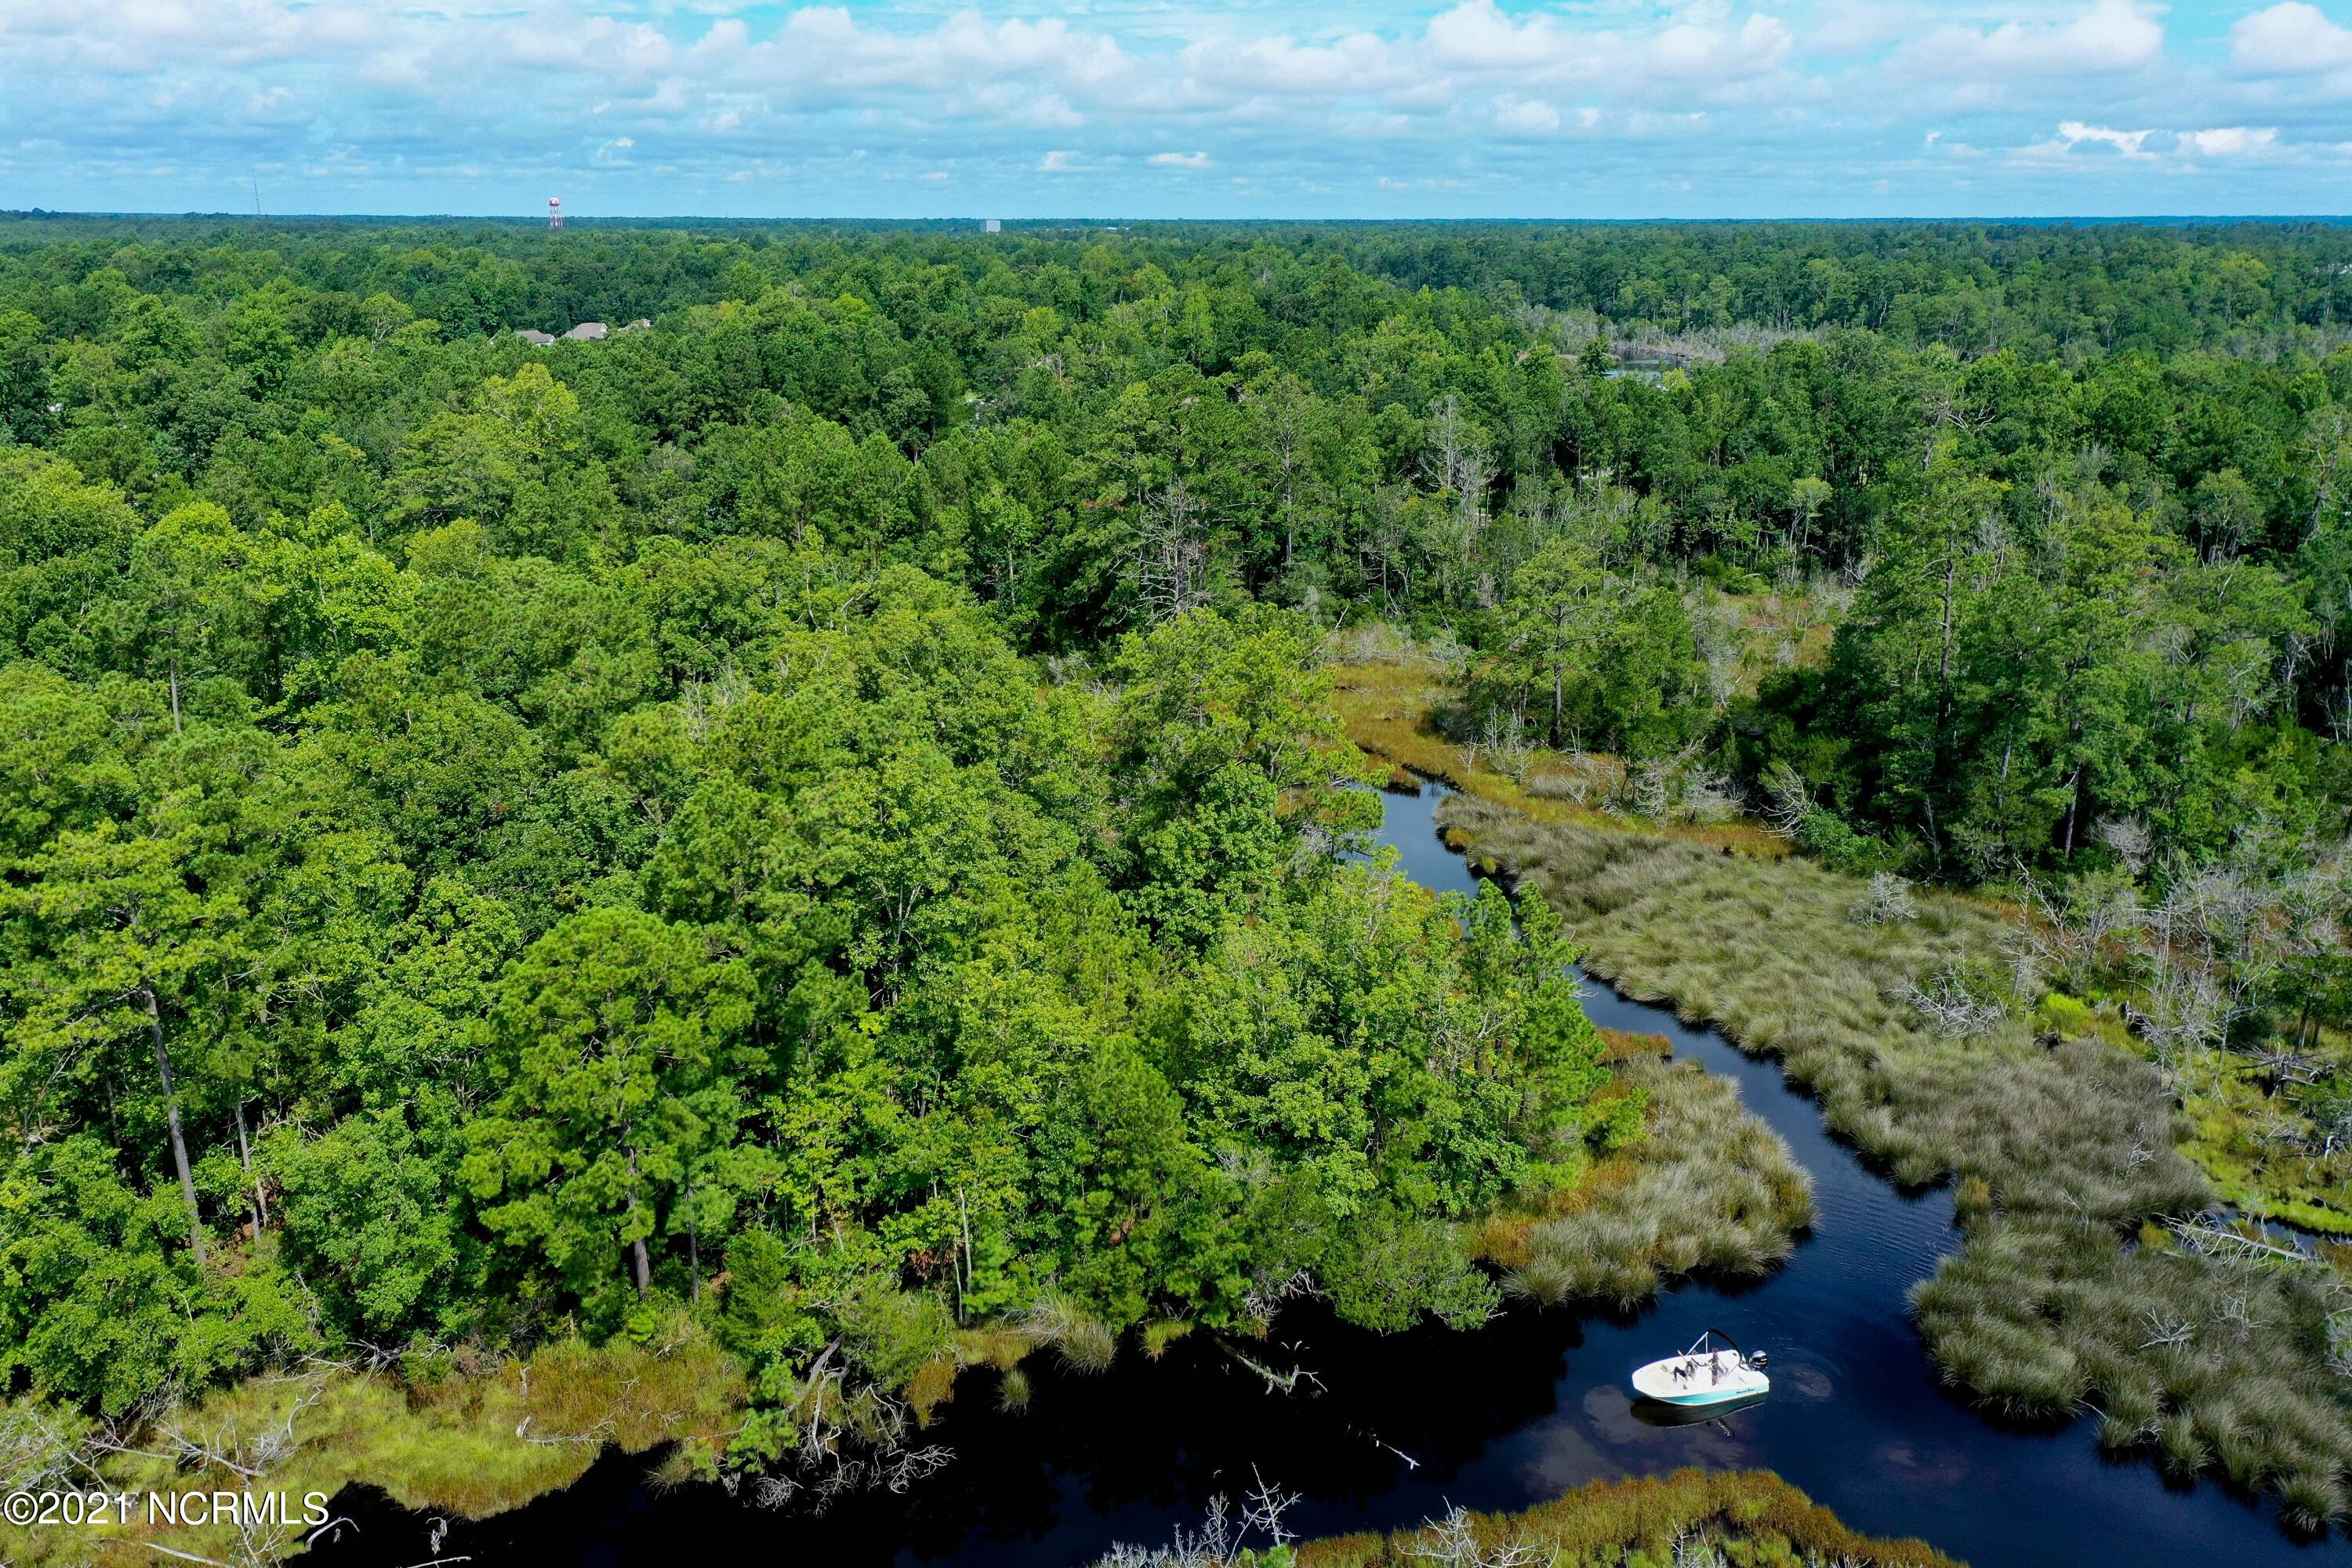 Over 12 acres on the water! This lot is tucked away offering tons of privacy to build your waterfront dream home.